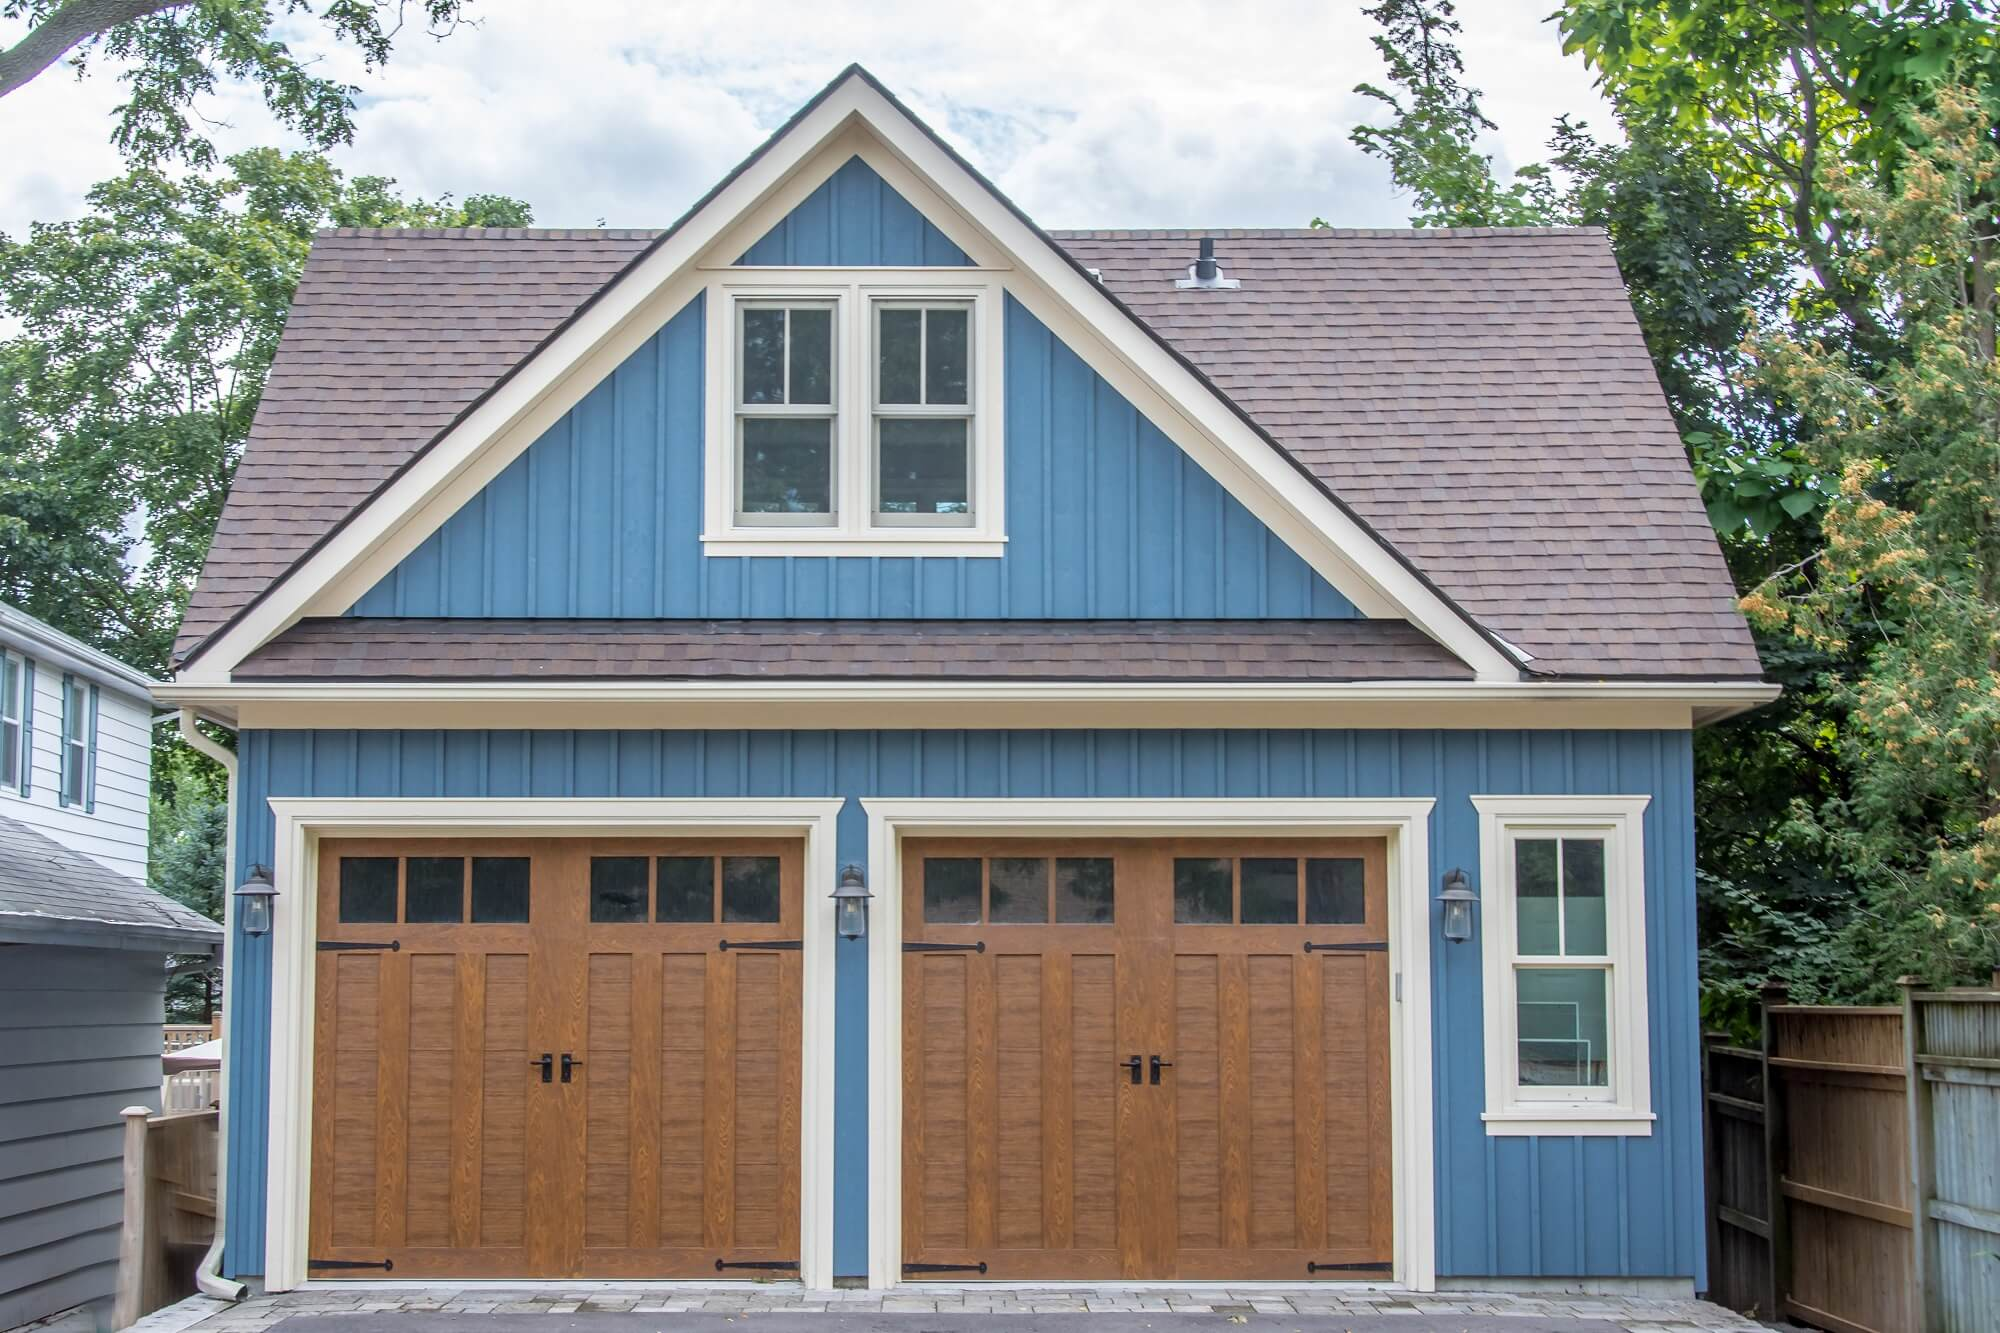 Creating A Livable Garage Apartment For Passive Income Builddirectbuilddirect Blog Life At Home